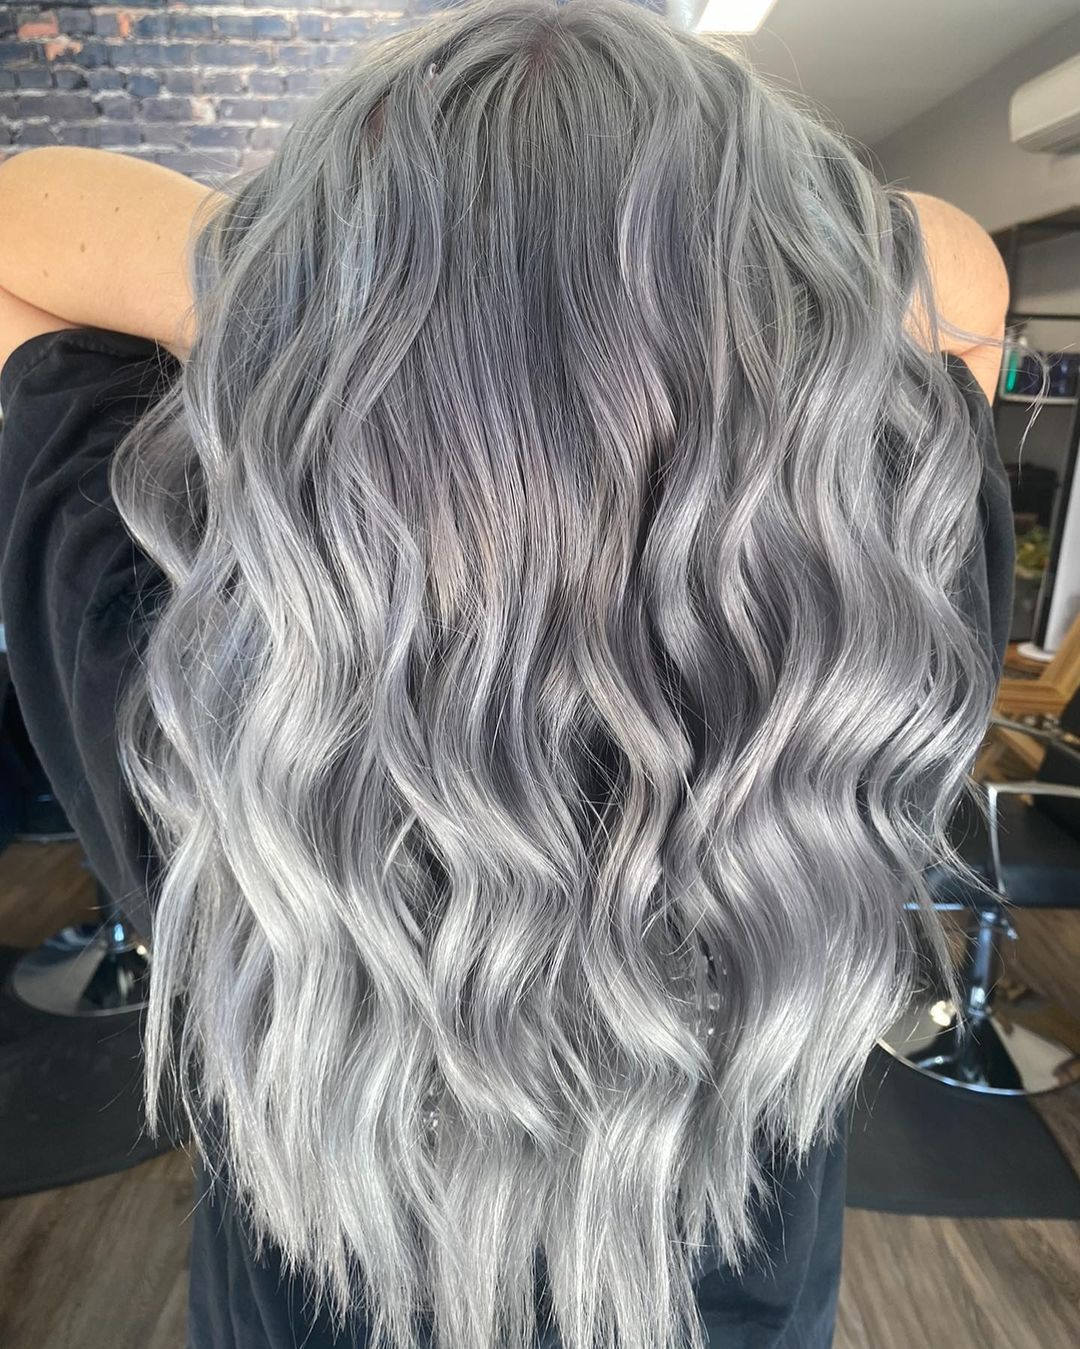 Gray Hair with Silver Highlights